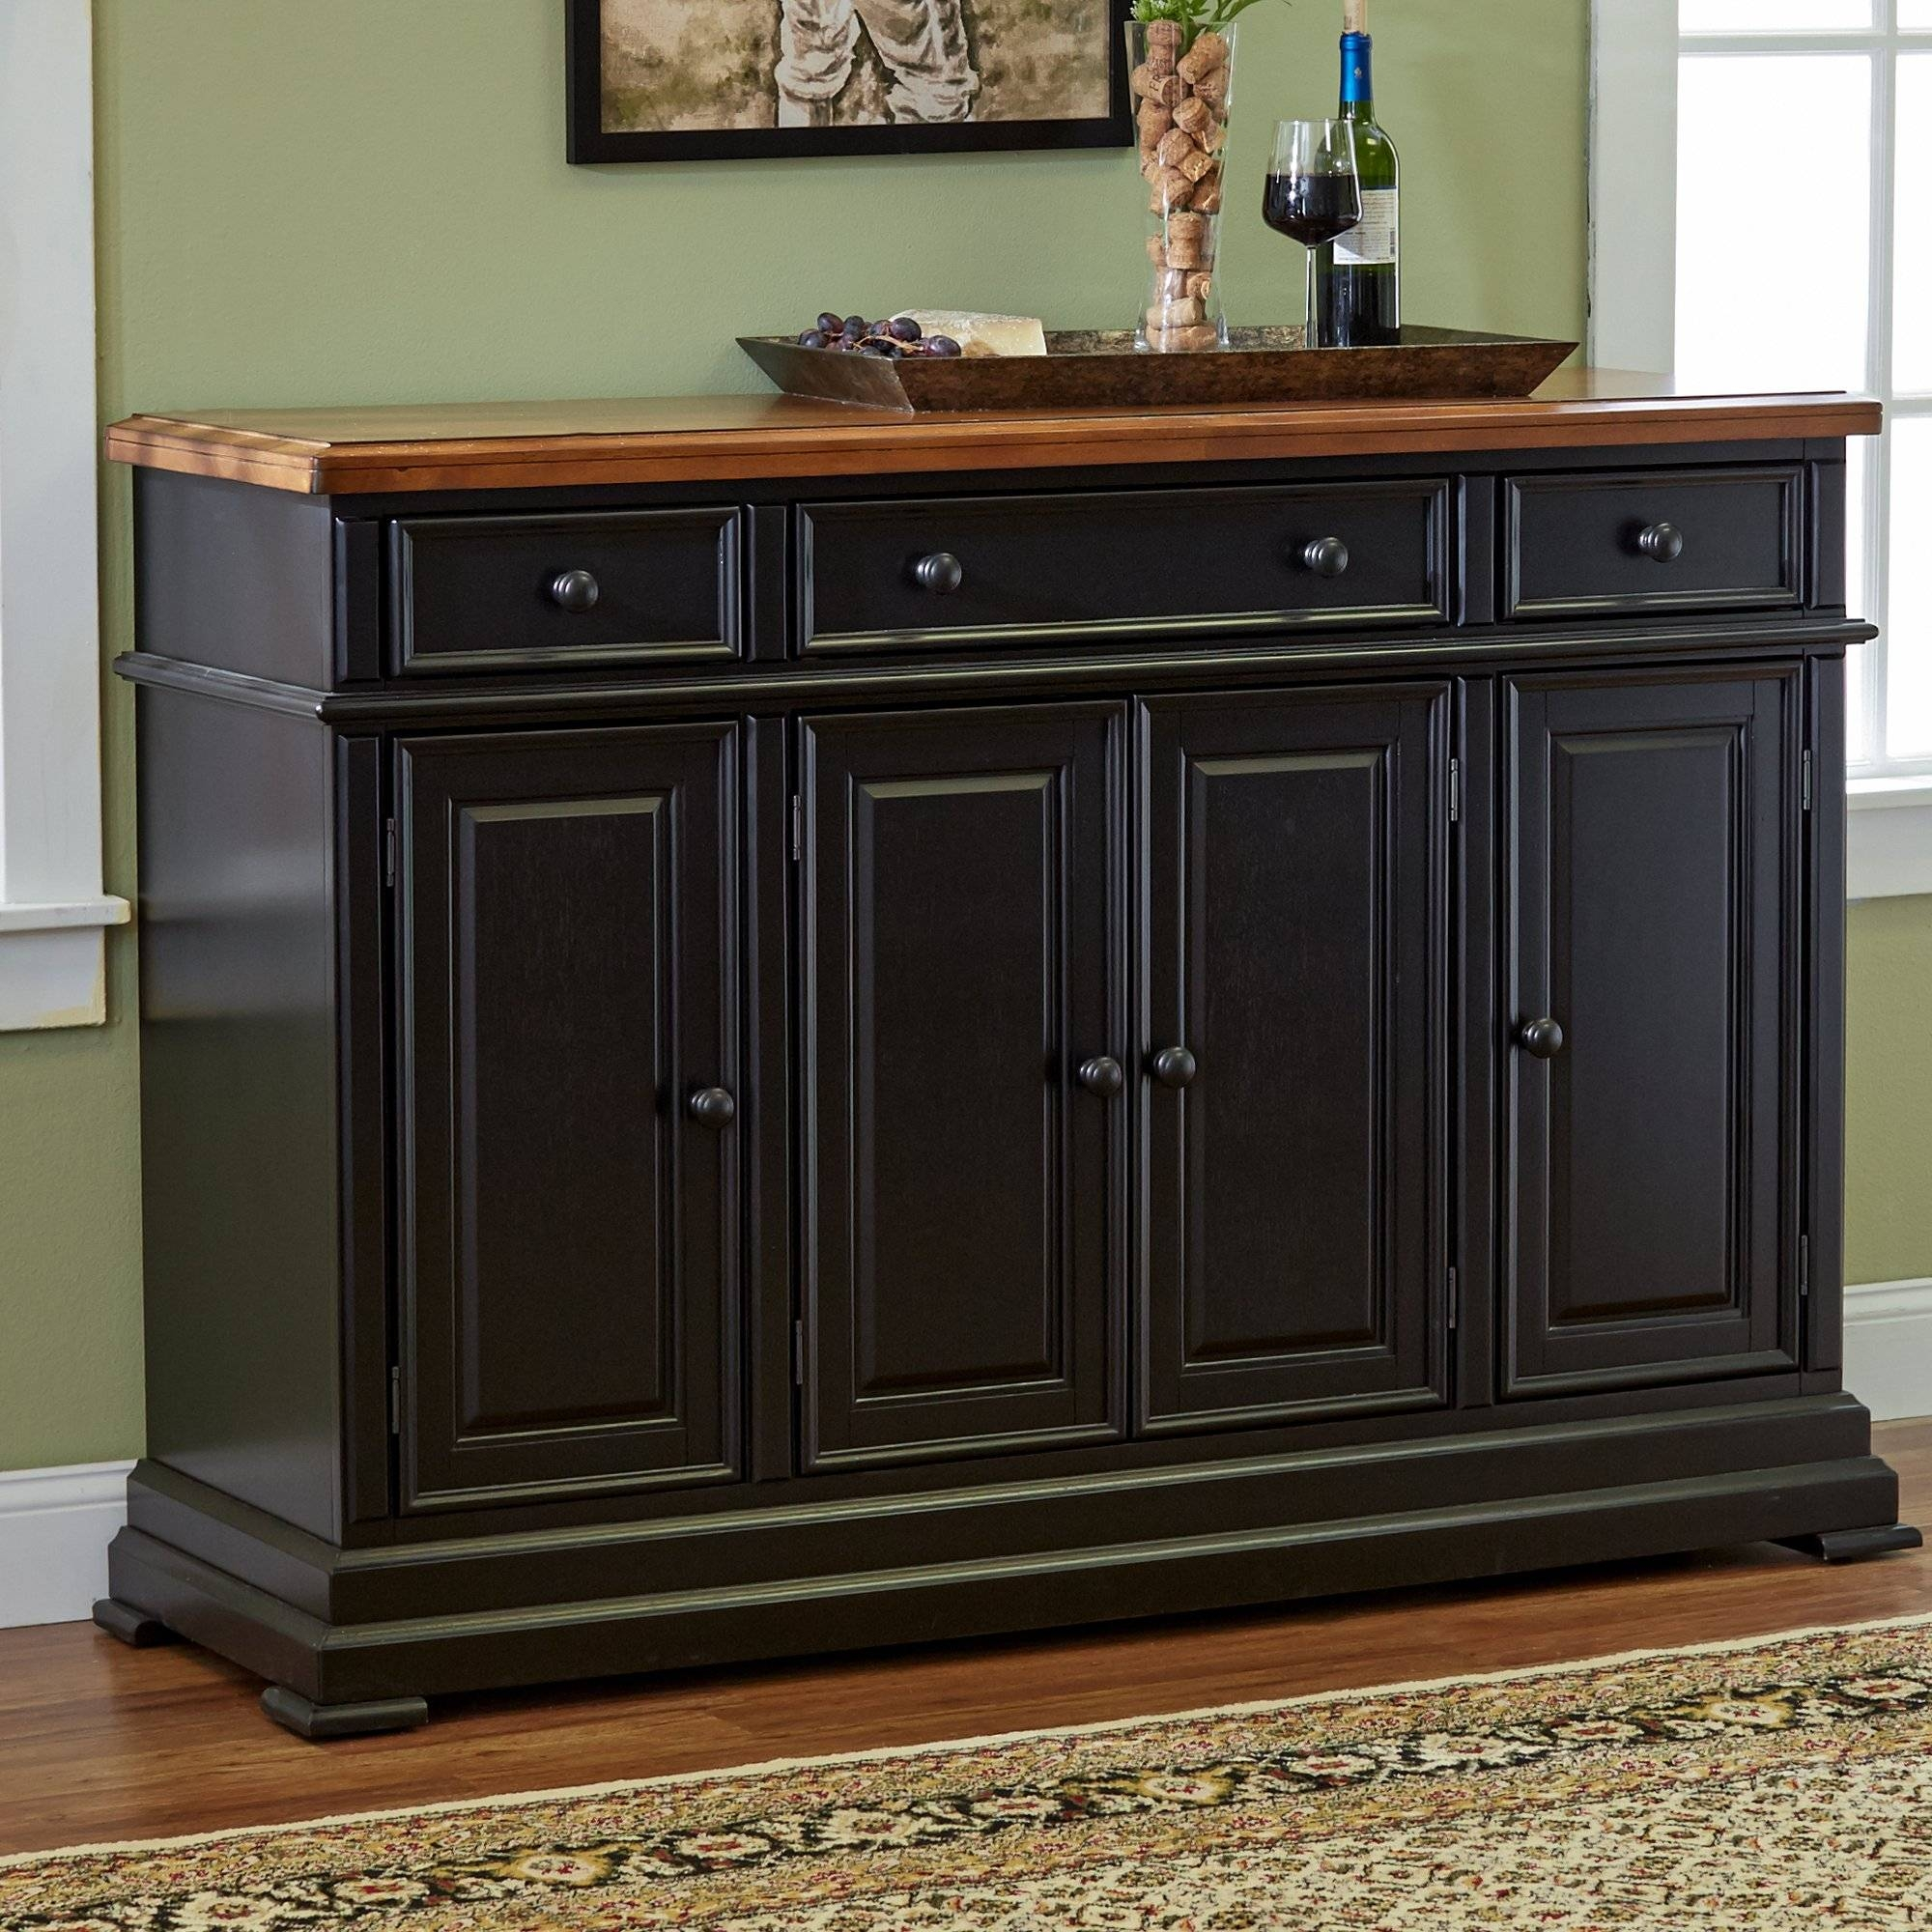 Furniture: Contemporary Version Of Distressed Sideboard Buffet Throughout Rustic Sideboards (View 20 of 20)